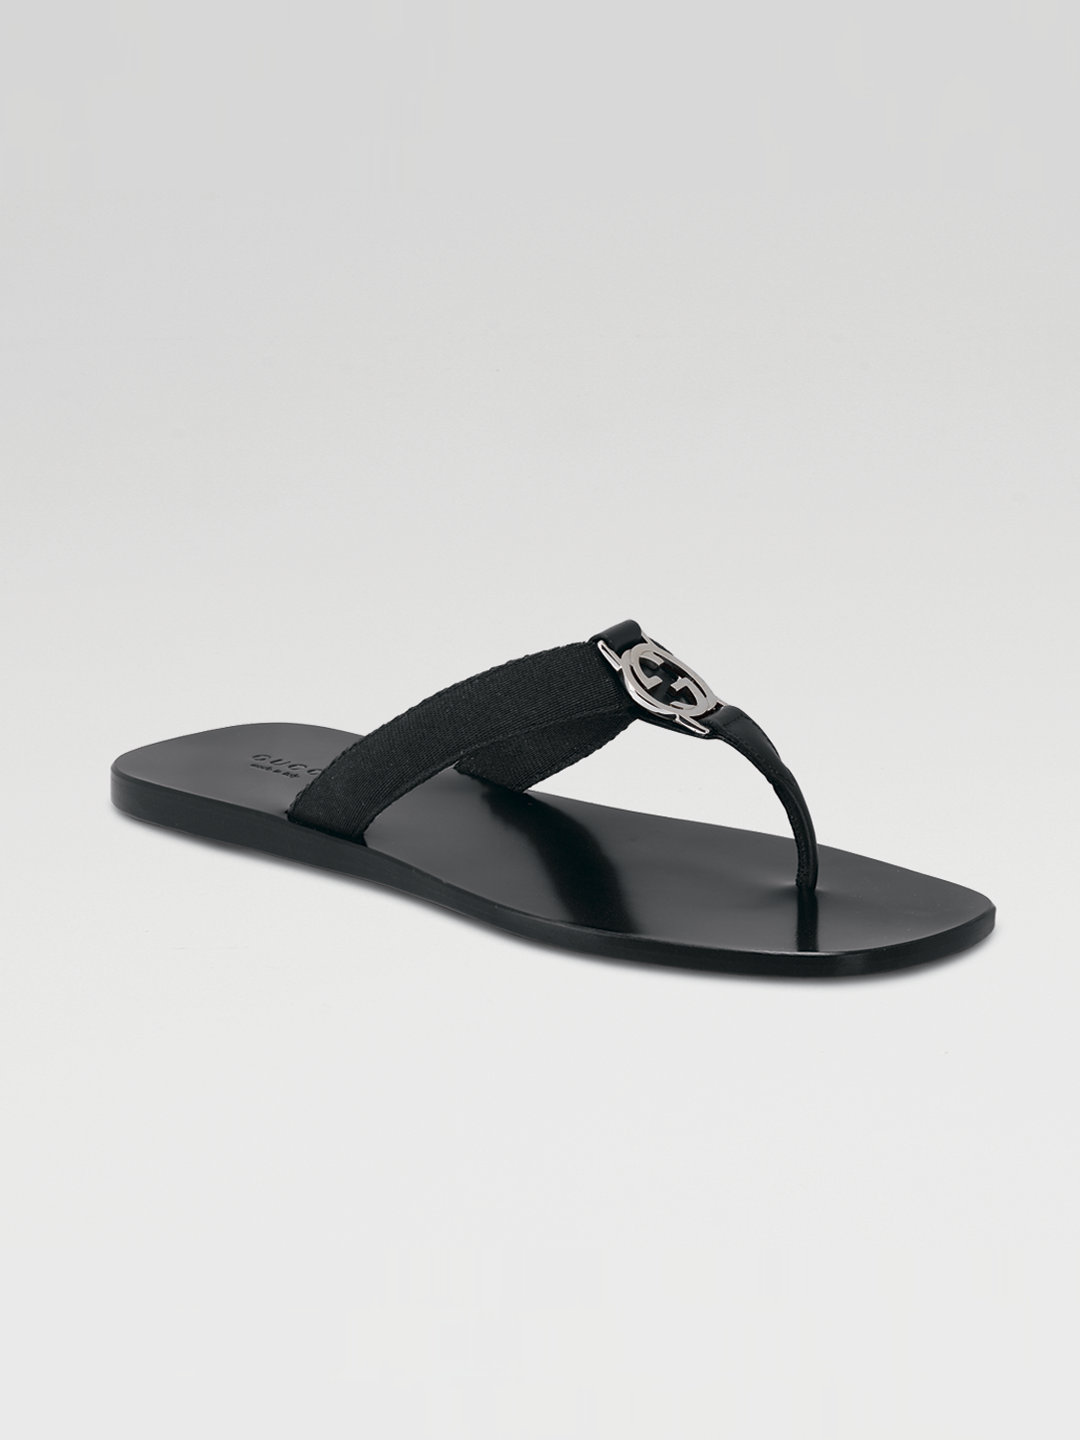 6d311b02a7f1 Lyst - Gucci Gg Thong Sandals in Black for Men